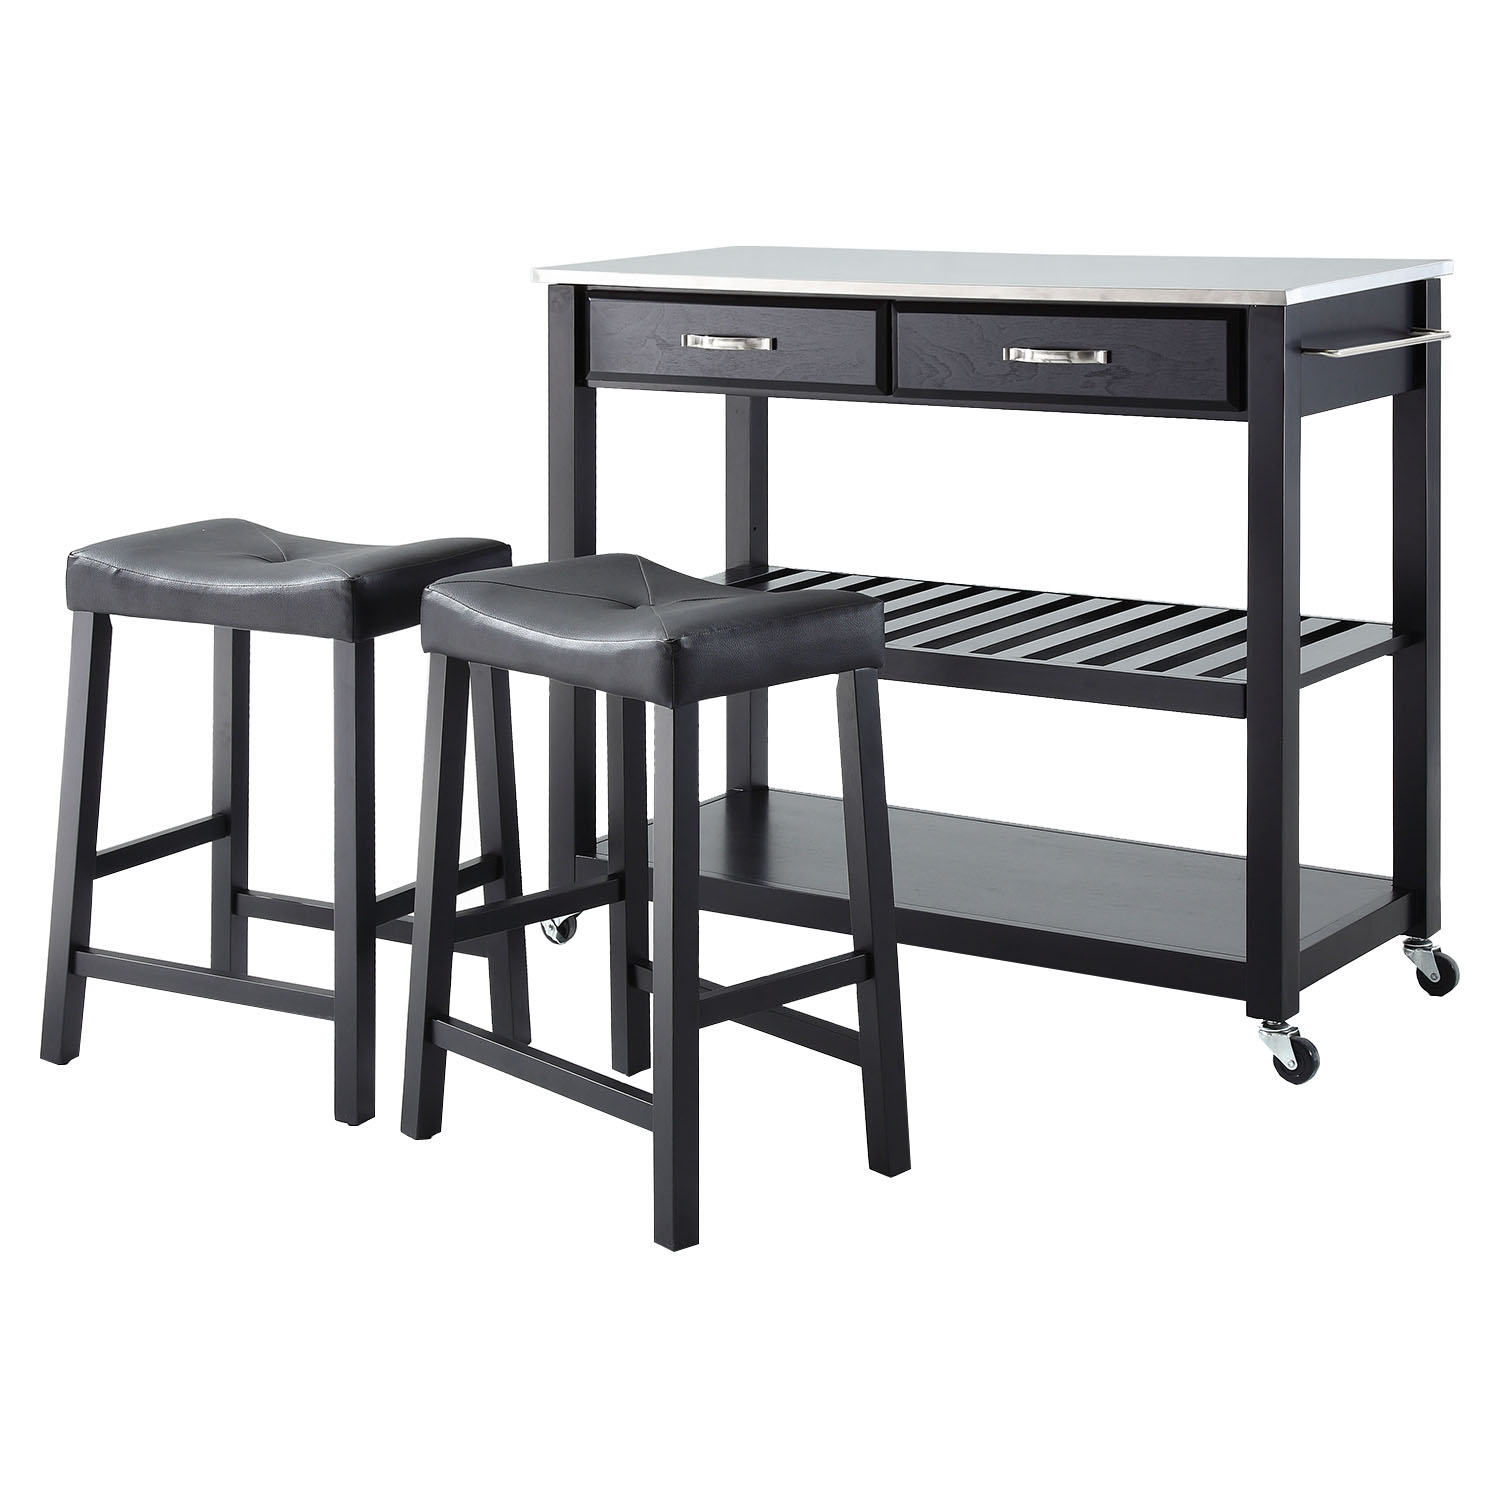 Stainless Steel Top Kitchen Island Cart and Saddle Stools - Black - CROS-KF300524BK